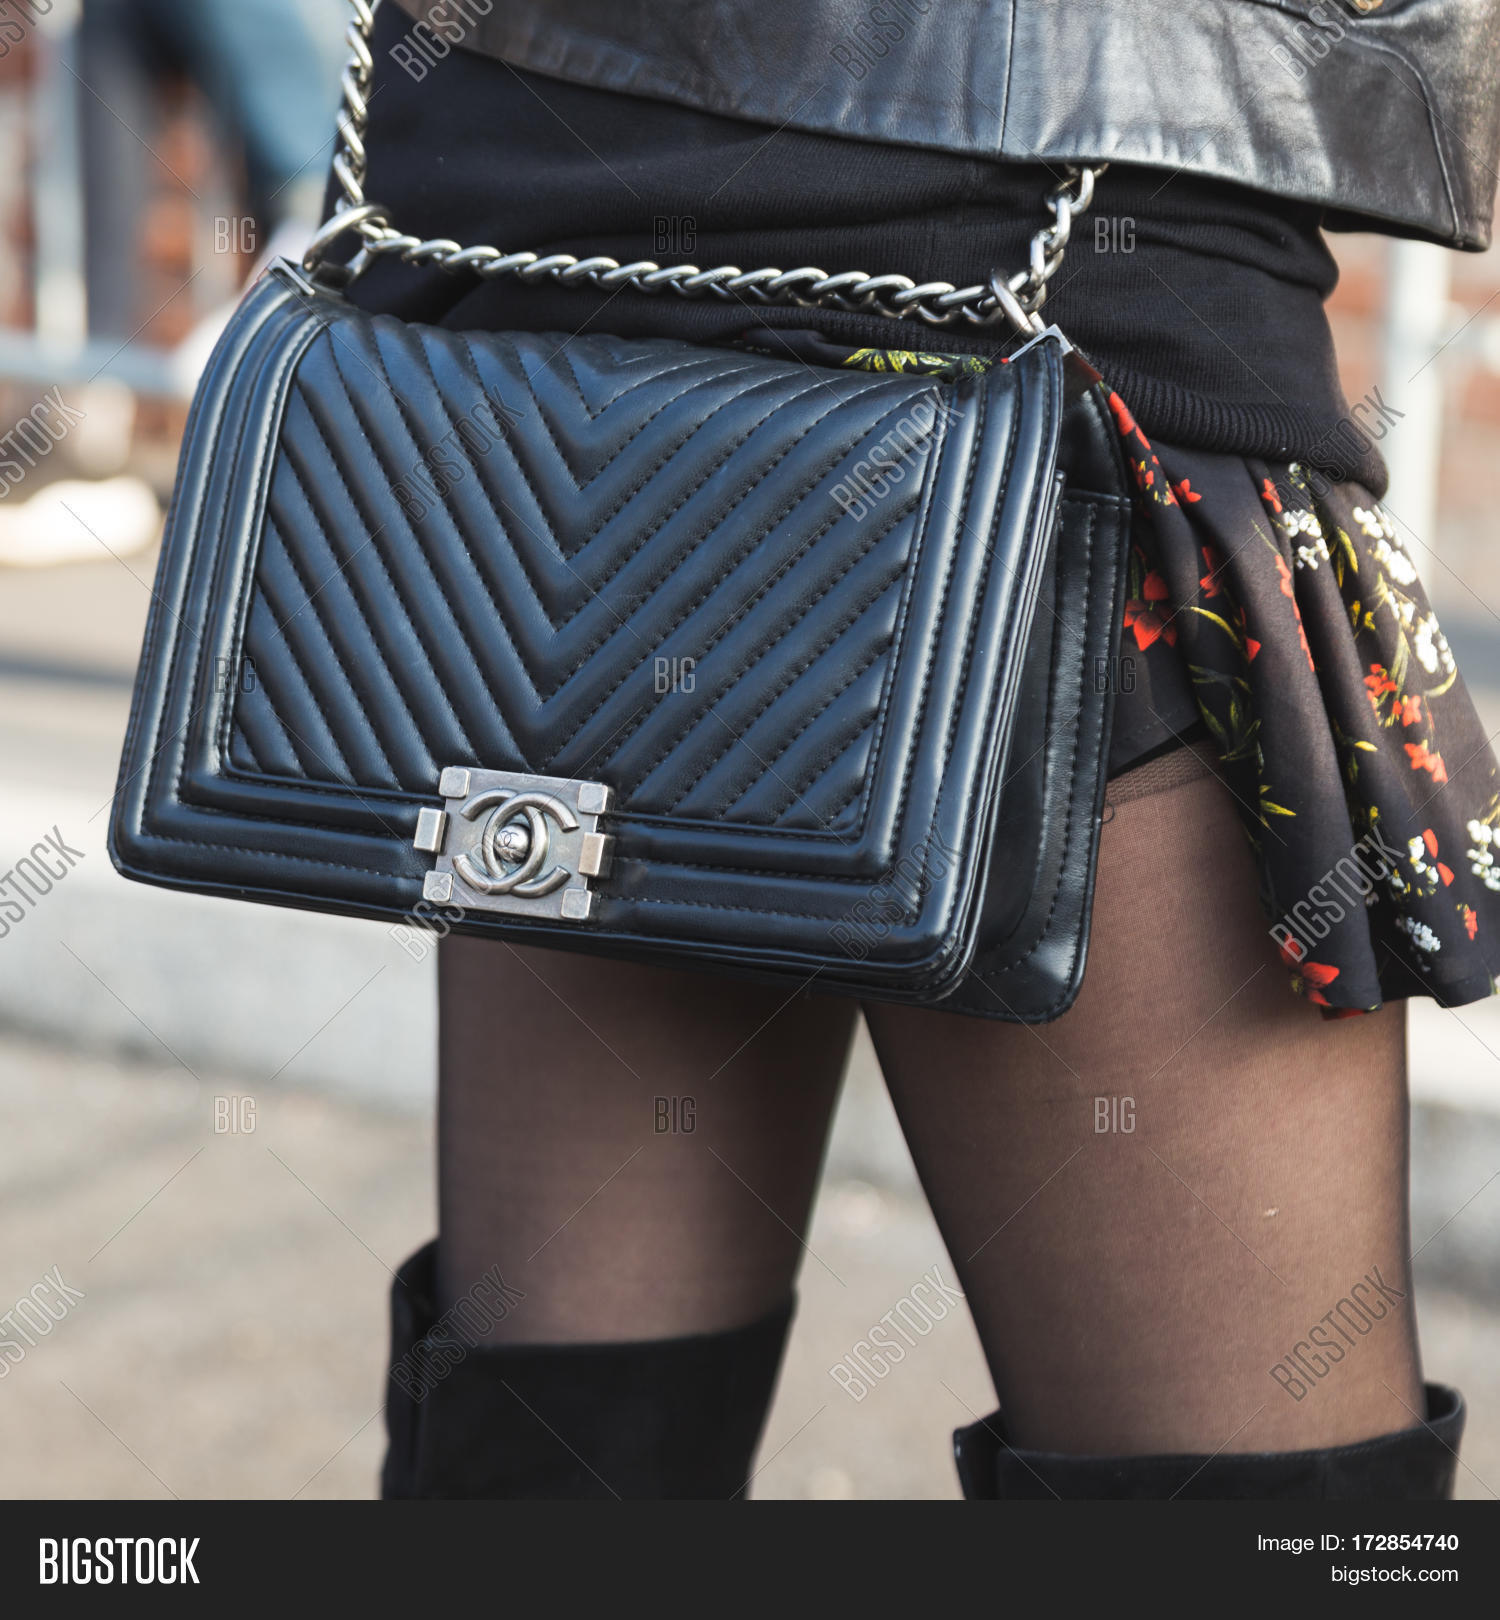 cc30e191 MILAN ITALY - FEBRUARY 22: Detail of bag outside Gucci fashion show building  during Milan